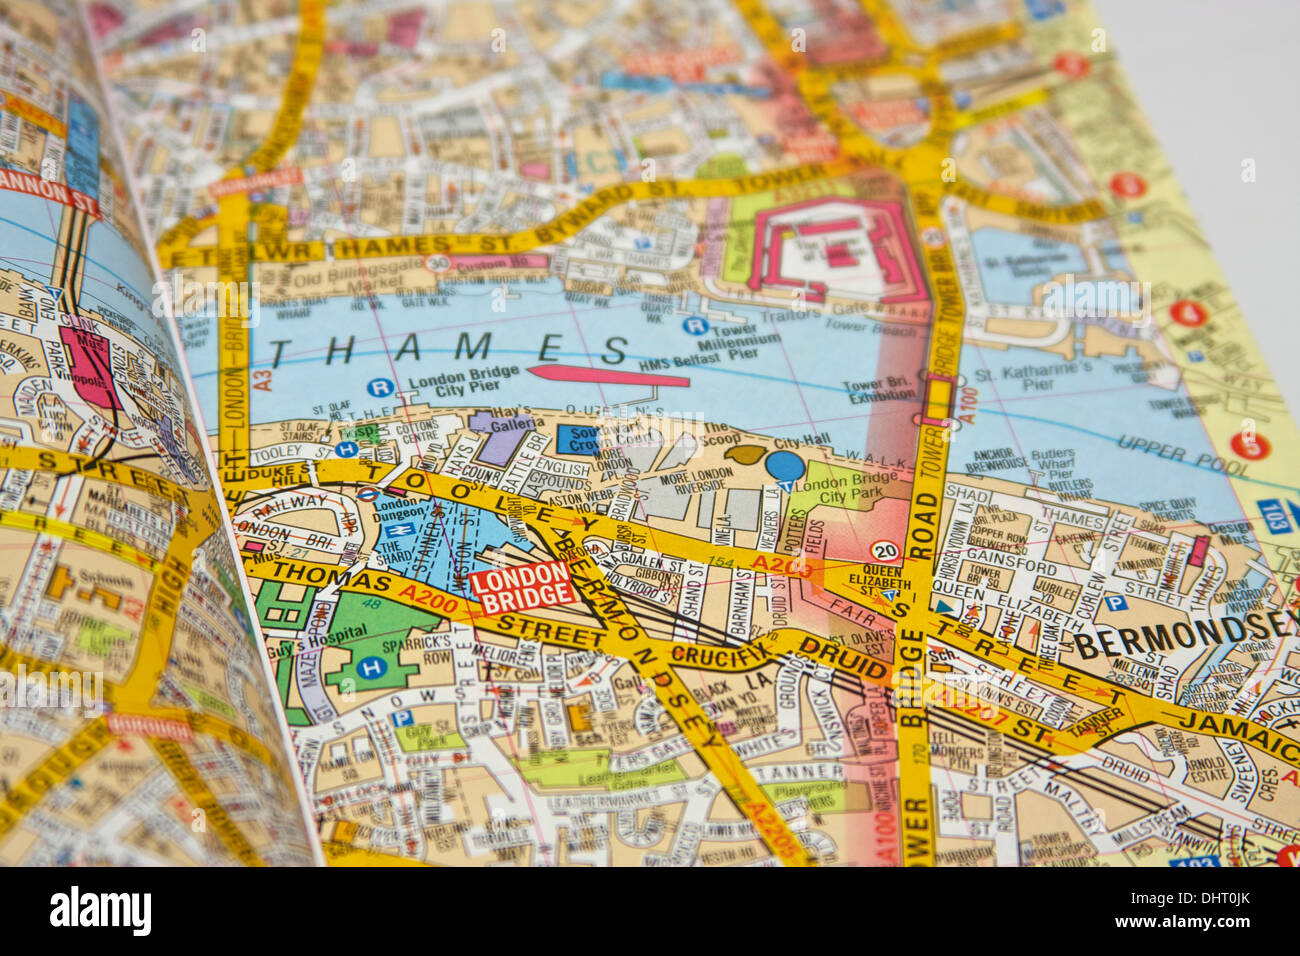 London Map Location.London Street Map With Focus On Location Of The Shard Stock Photo